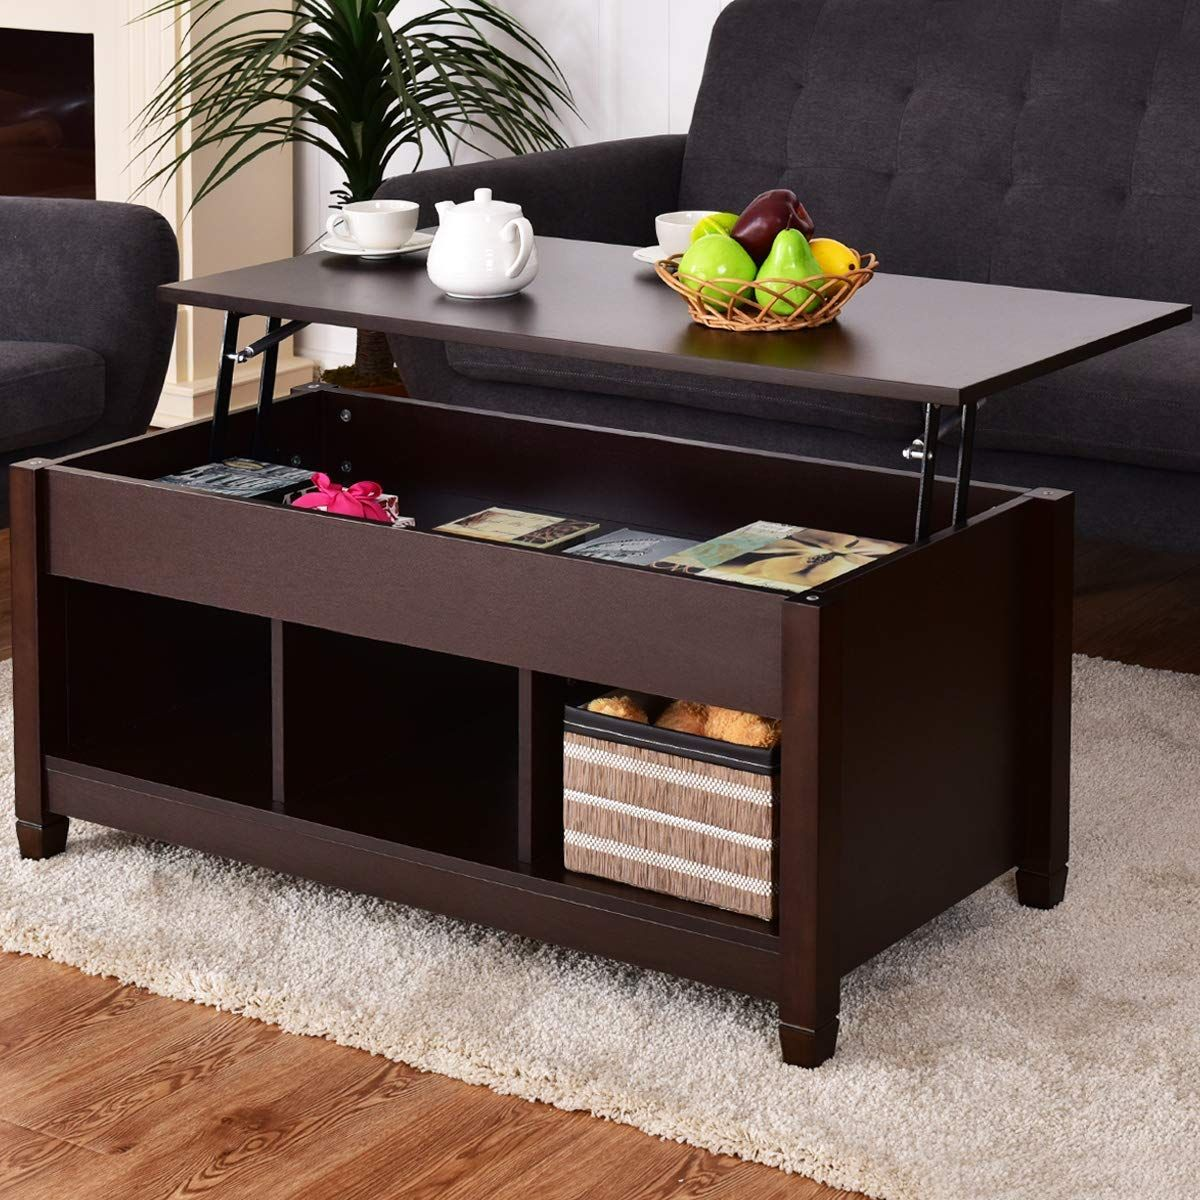 This Mid Century Modern Lift Top Coffee Table In A Beautiful Dark